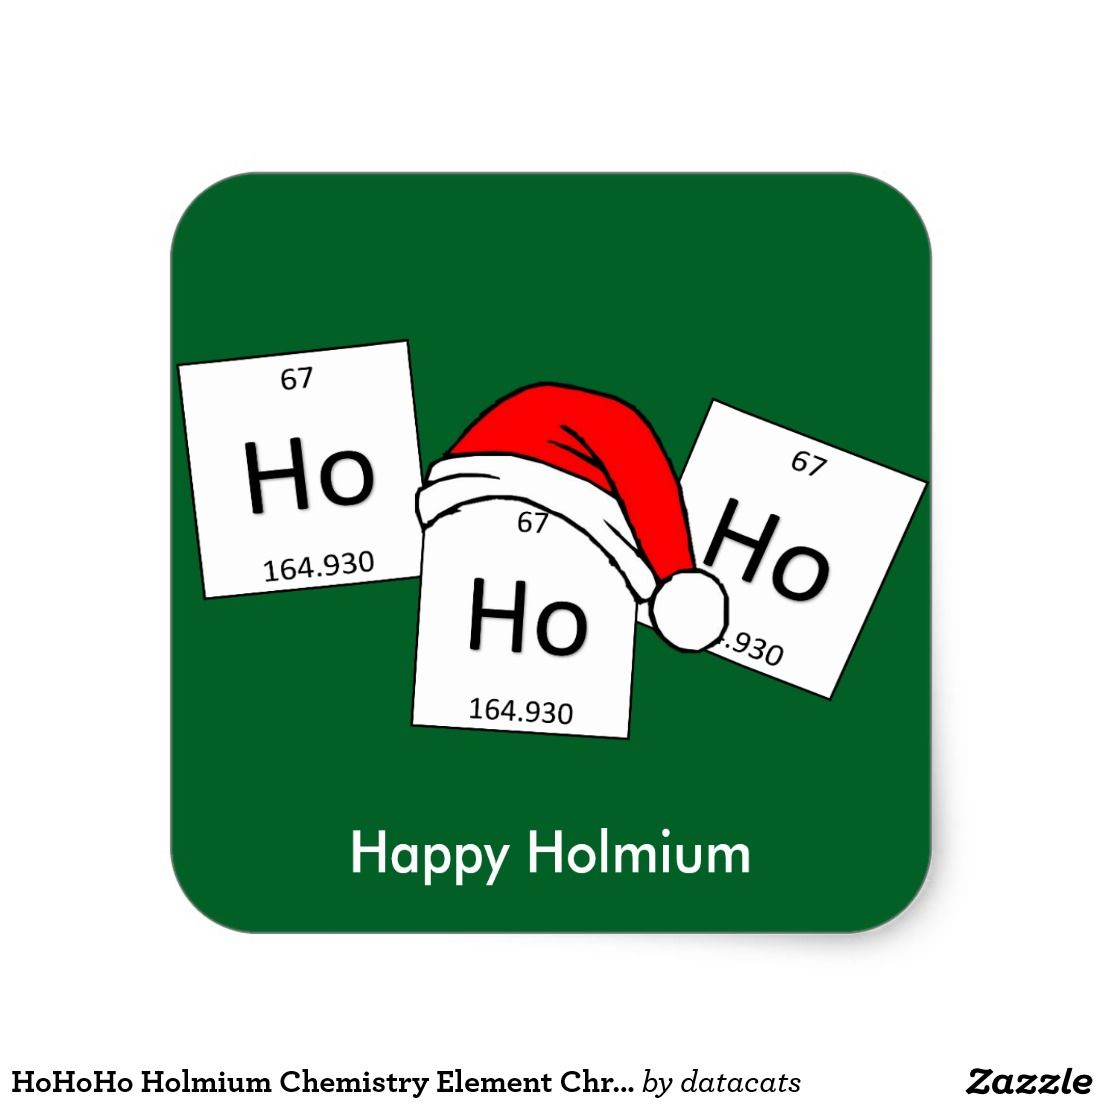 Christmas Pun.Hohoho Holmium Chemistry Element Christmas Pun Square